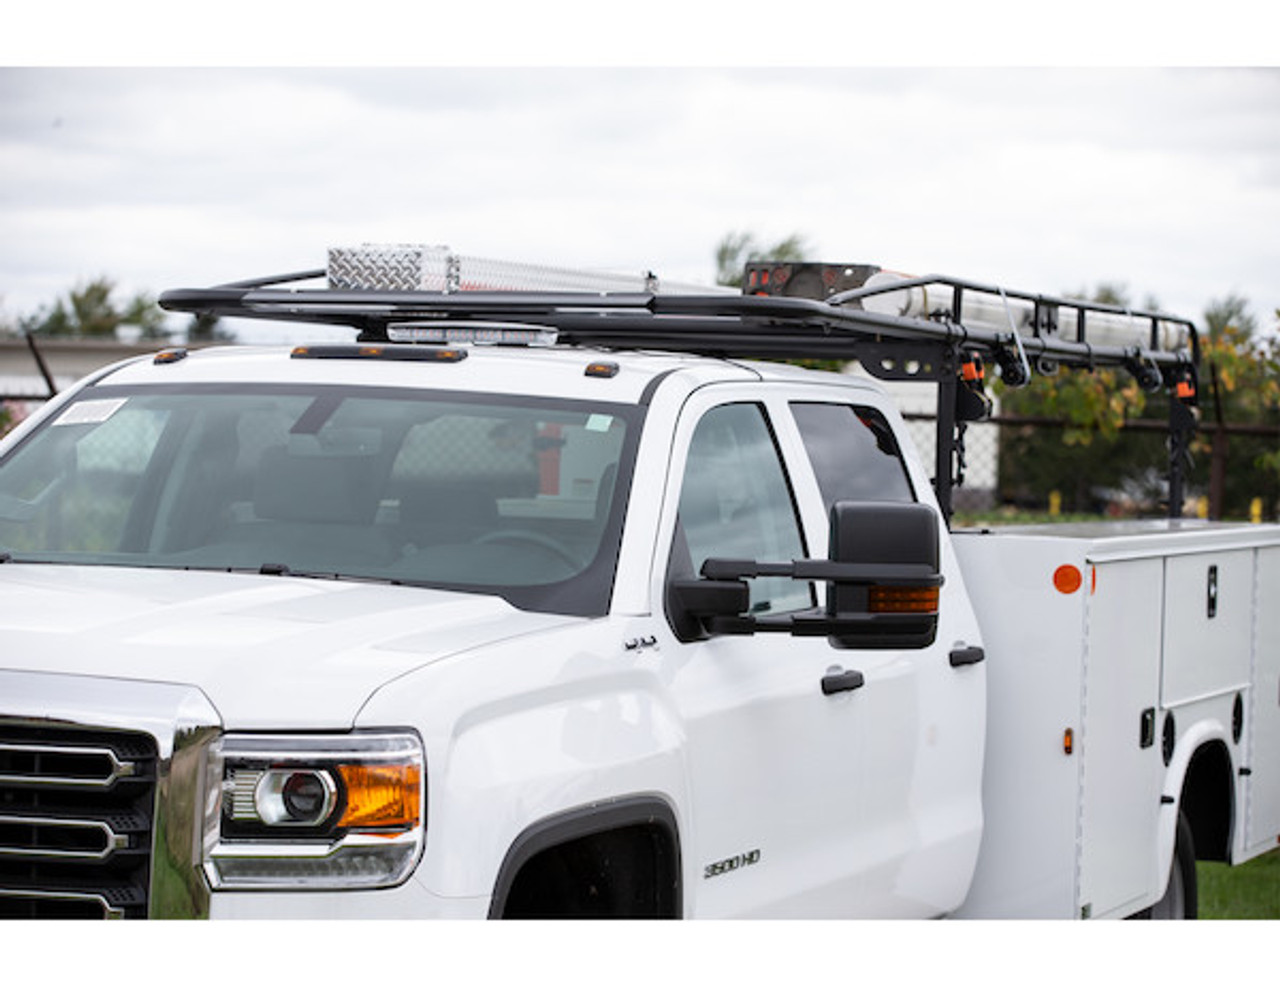 BUYERS 1501250 13-1/2 Foot Black Service Body Ladder Rack for Movers, Contractors, Construction, Painters Picture # 7